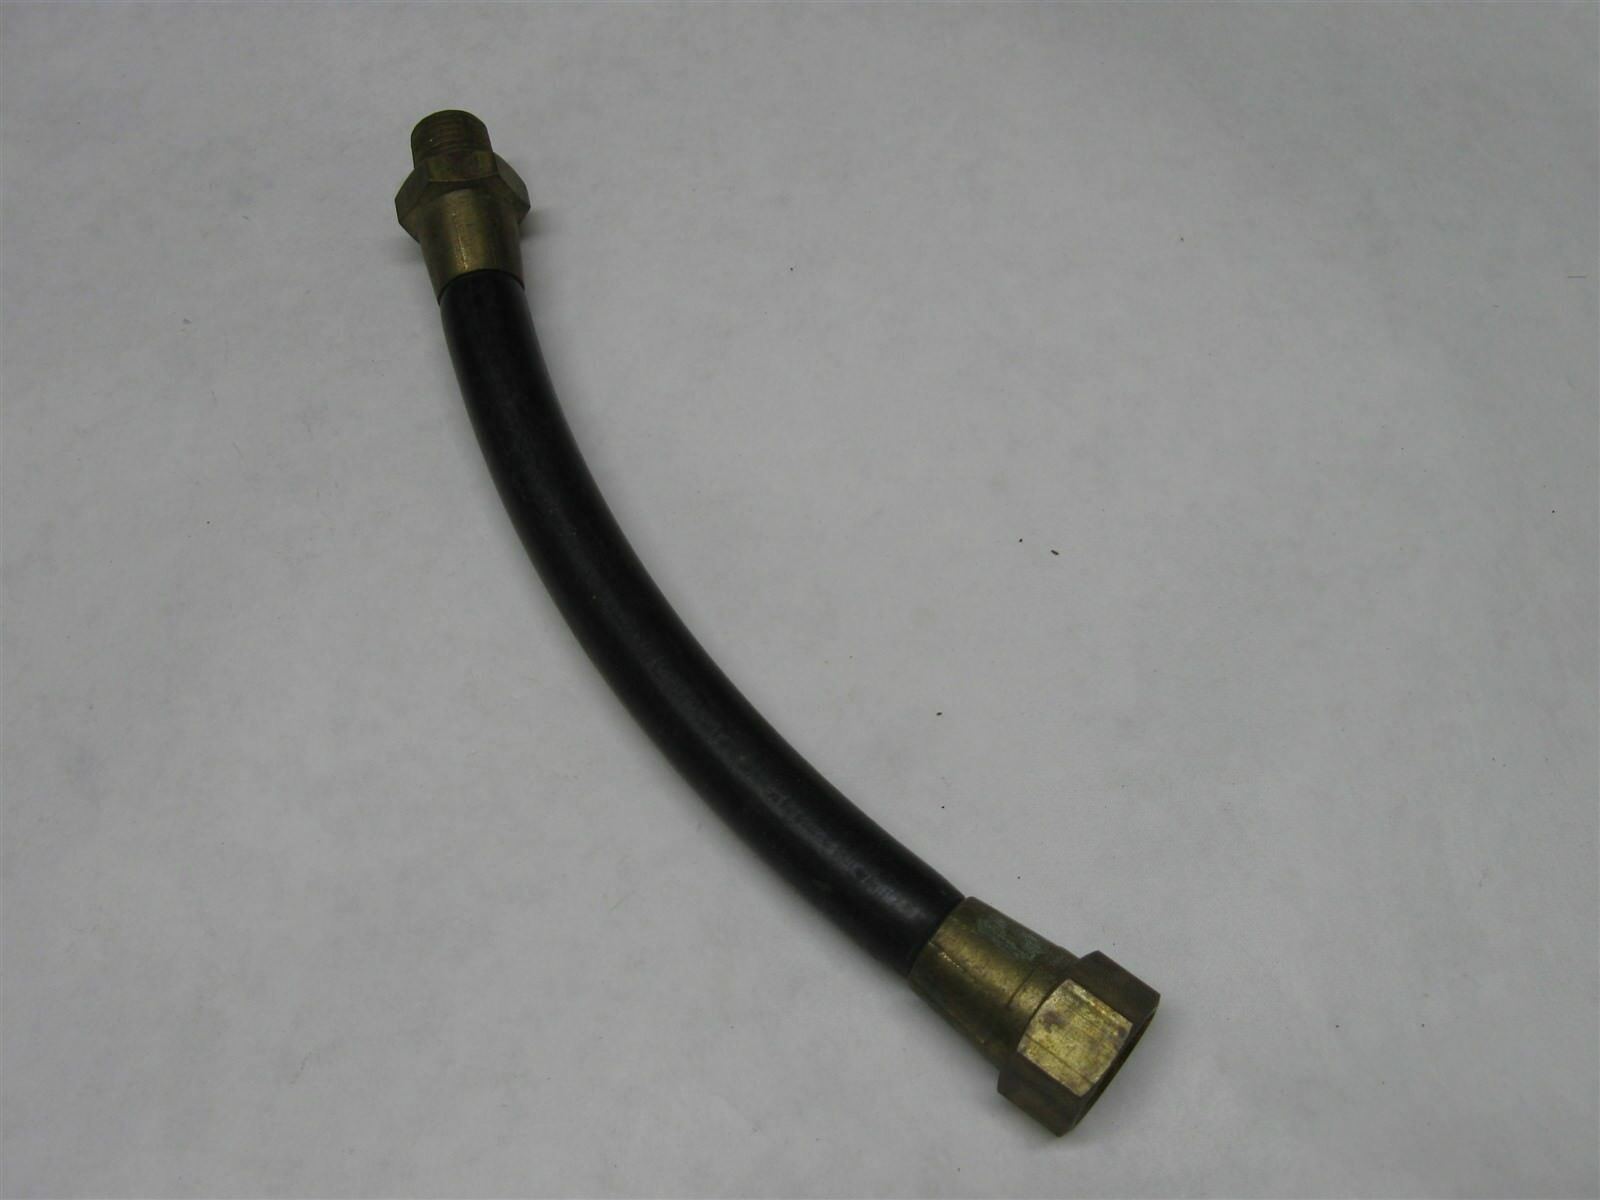 NEW GAS FUEL LINE HOSE 1950-51 RAMBLER ALL 1952-55 RAMBLER 6 CYL WOW NICE FIND